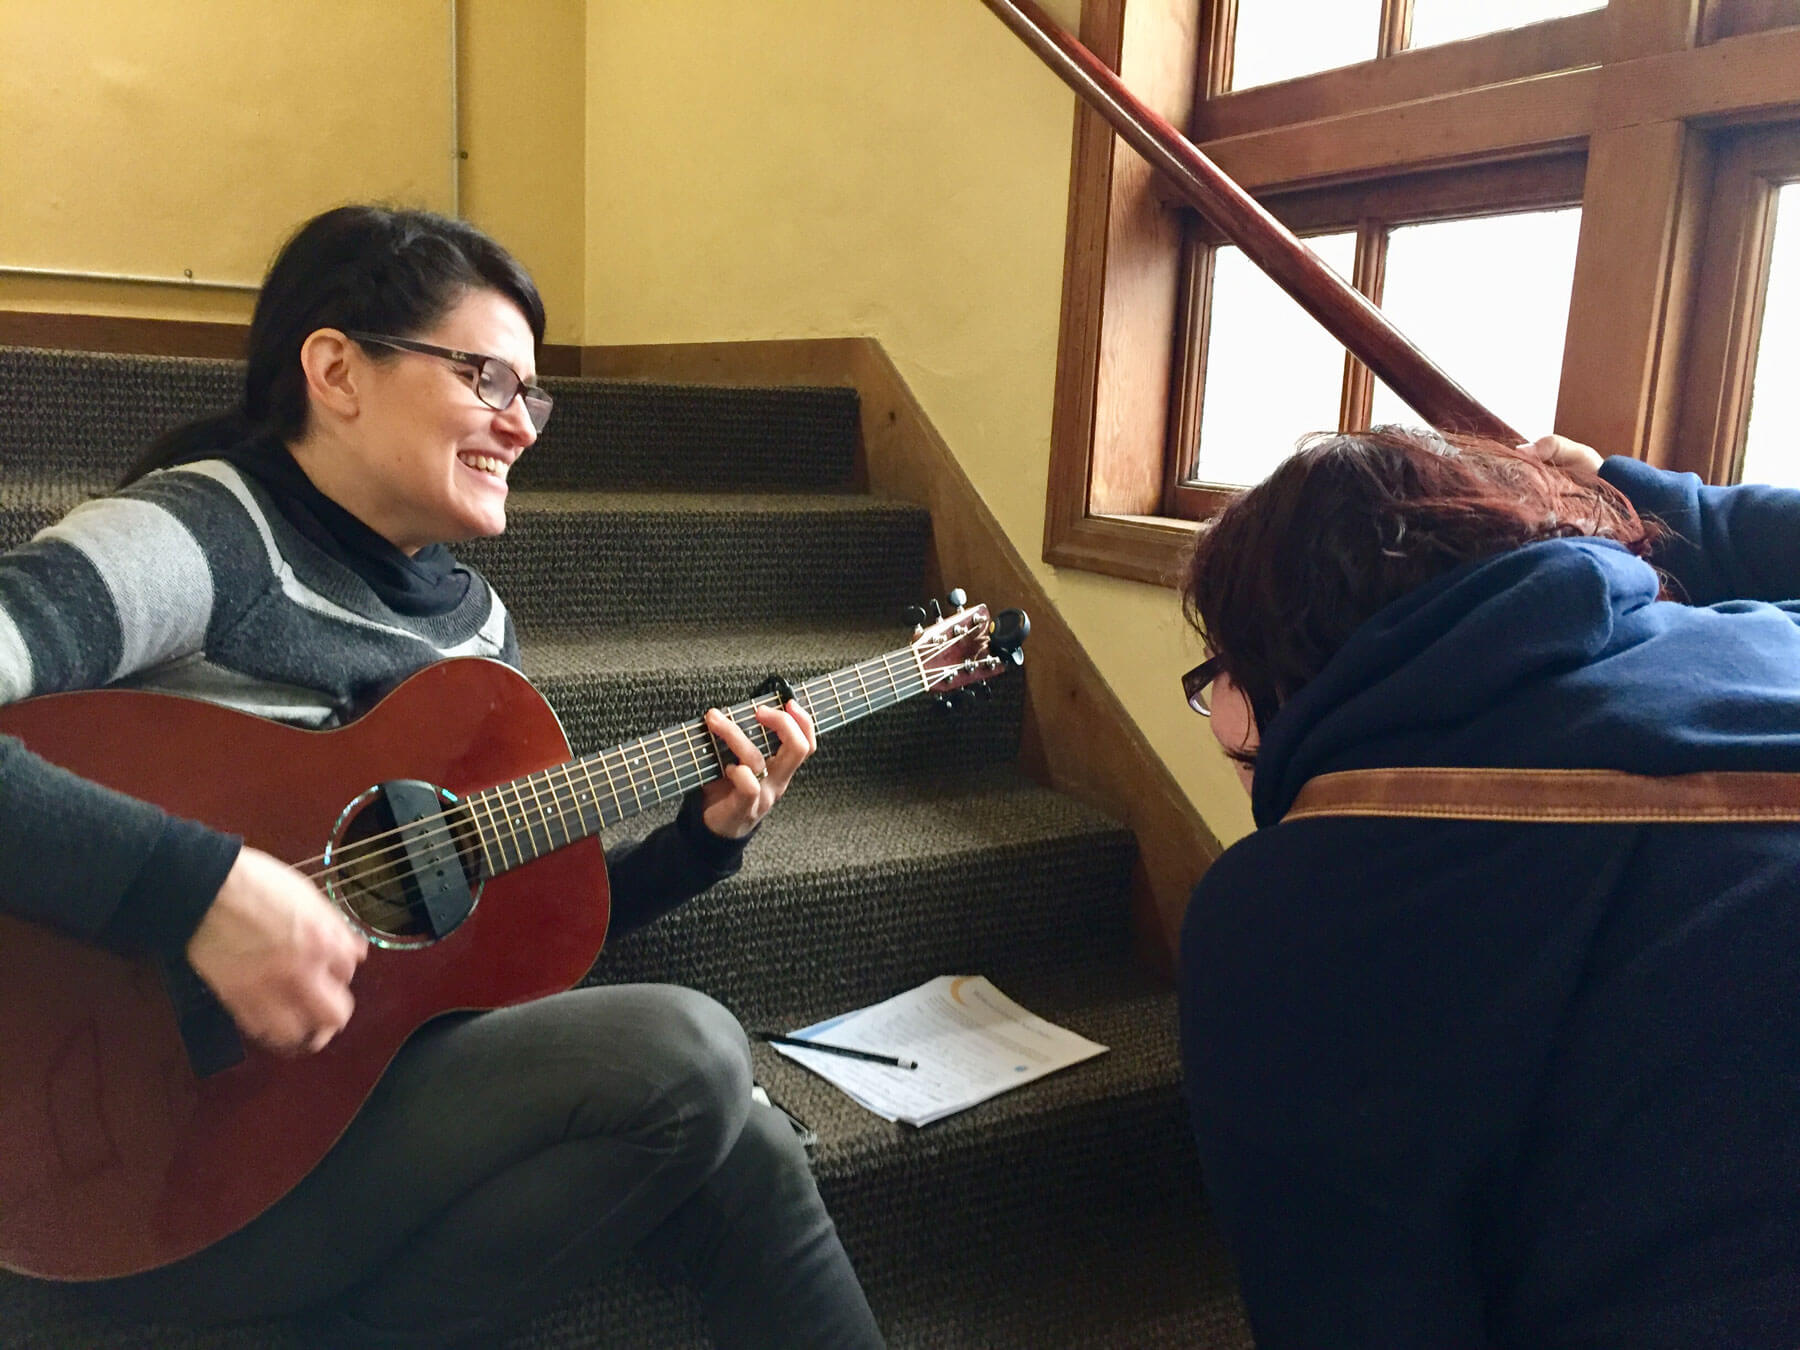 A singer-songwriter writes music with a mom